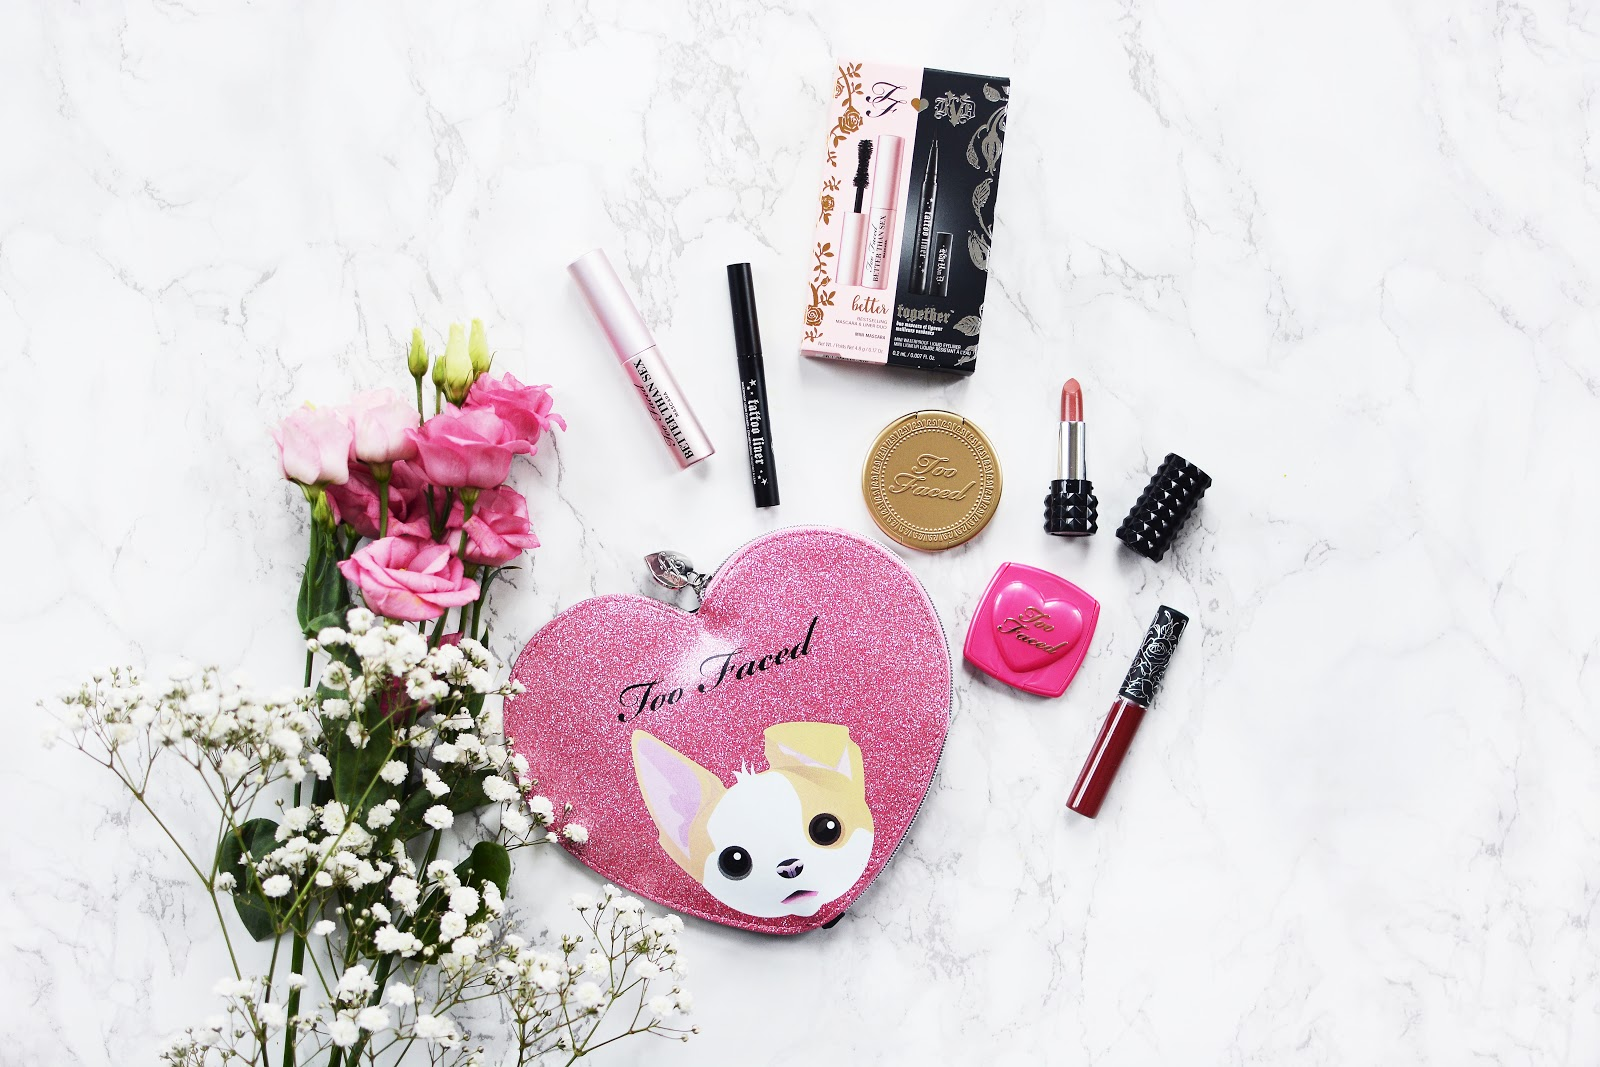 Better Together Collection by Too Faced x Kat Von D